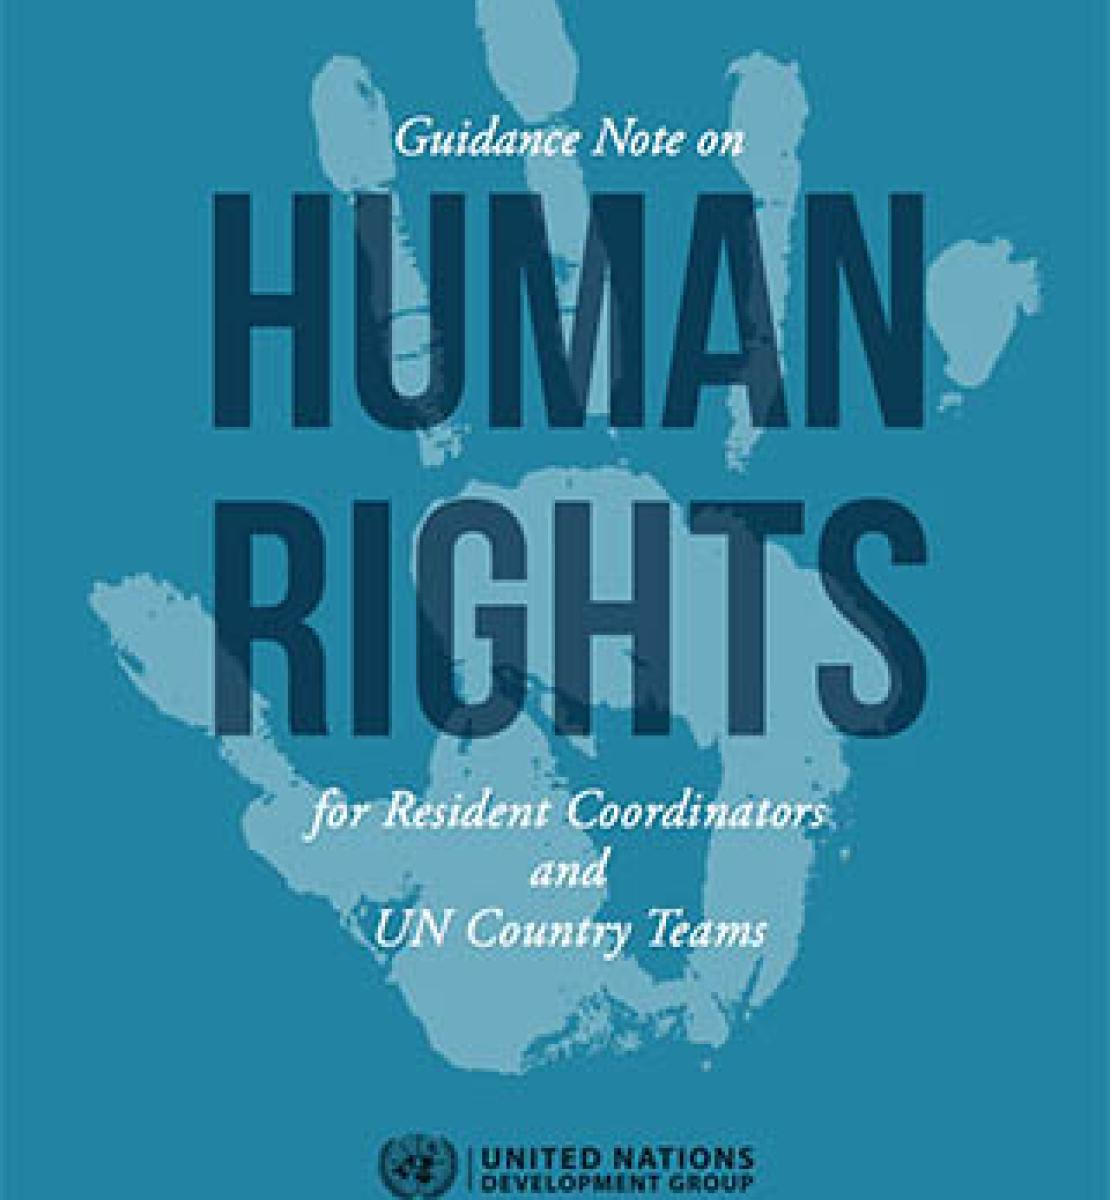 UNSDG Guidance Note on Human Rights for Resident Coordinators and UN Country Teams